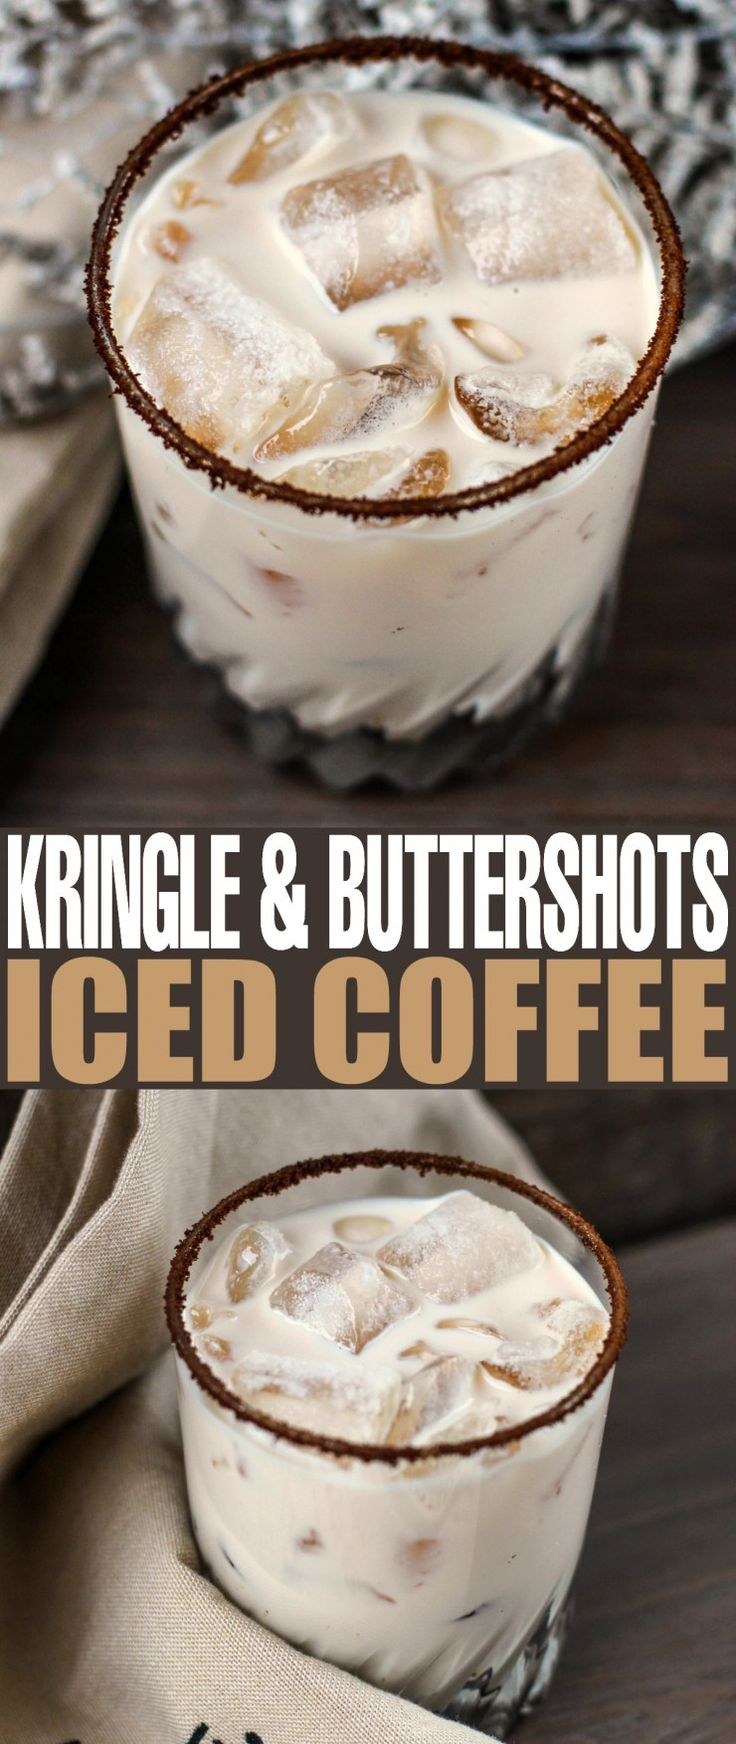 The holiday season is rife with holiday parties and dinners. After Christmas dinner and on new years eve, in particular, I enjoy a fancy drink. You know something sweet and delicious that I can savour slowly. I think this Kringle and Buttershots Iced Coffee fits the bill perfectly.